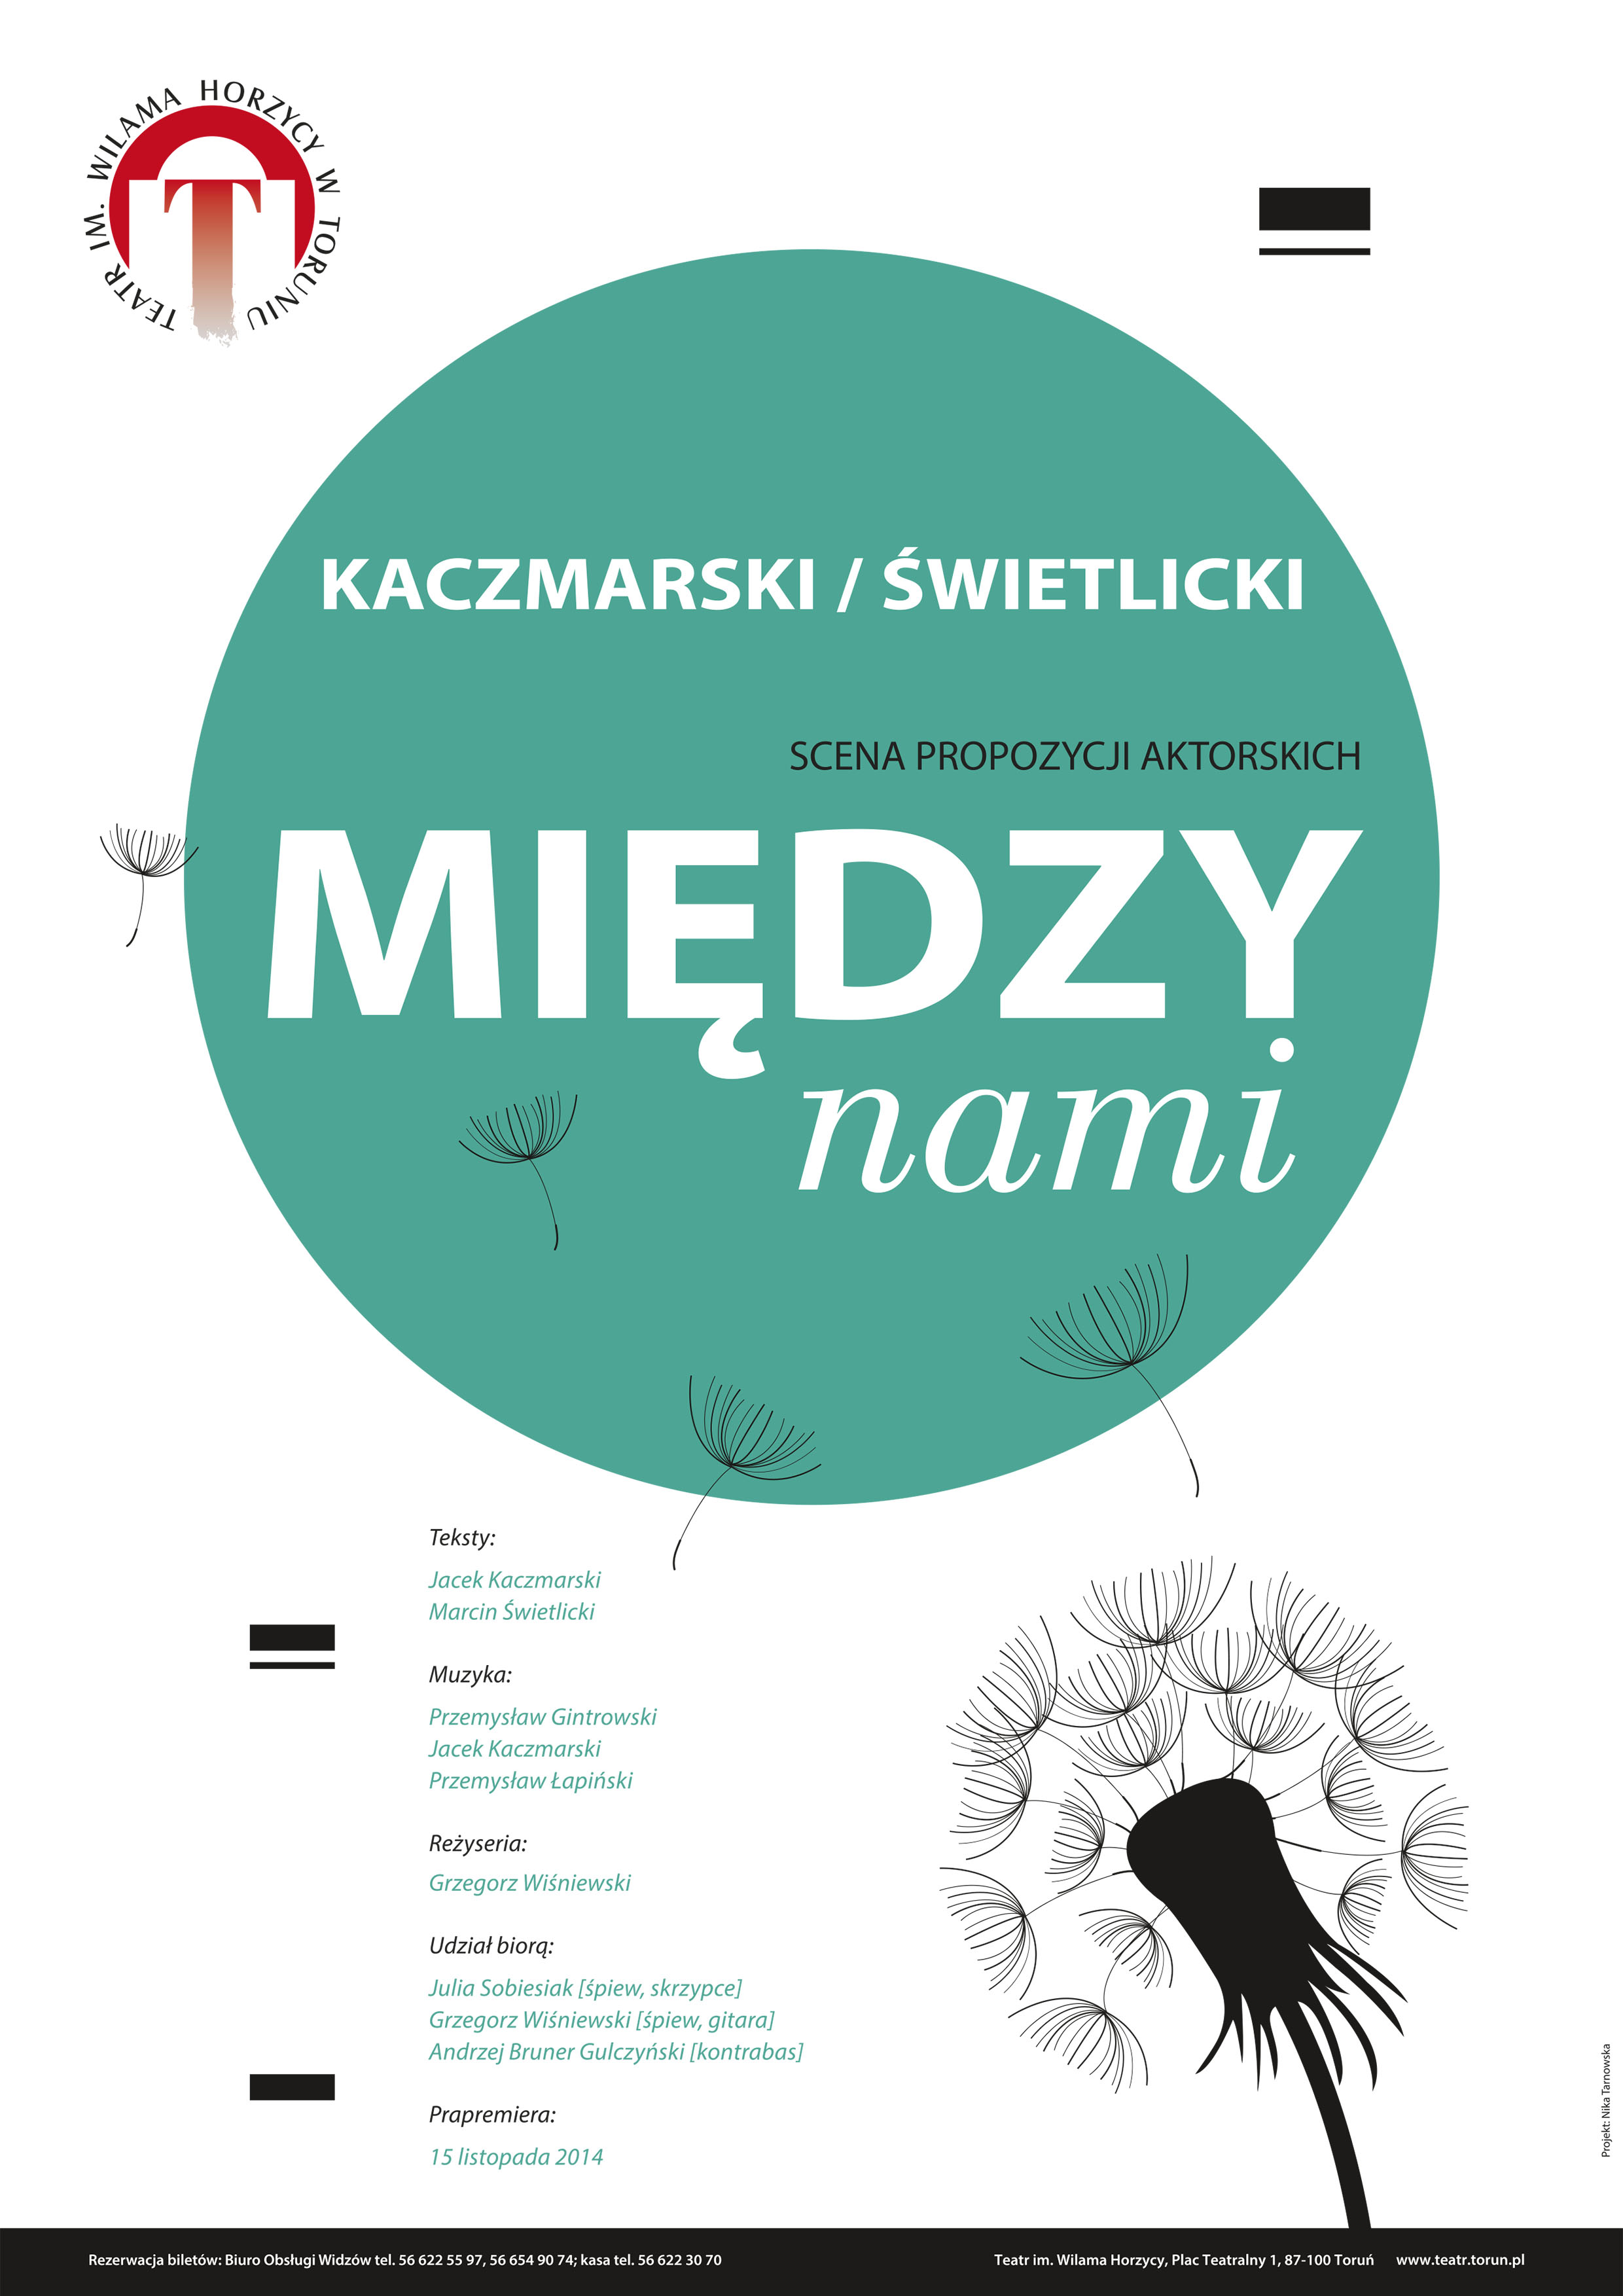 Between us (Między nami)